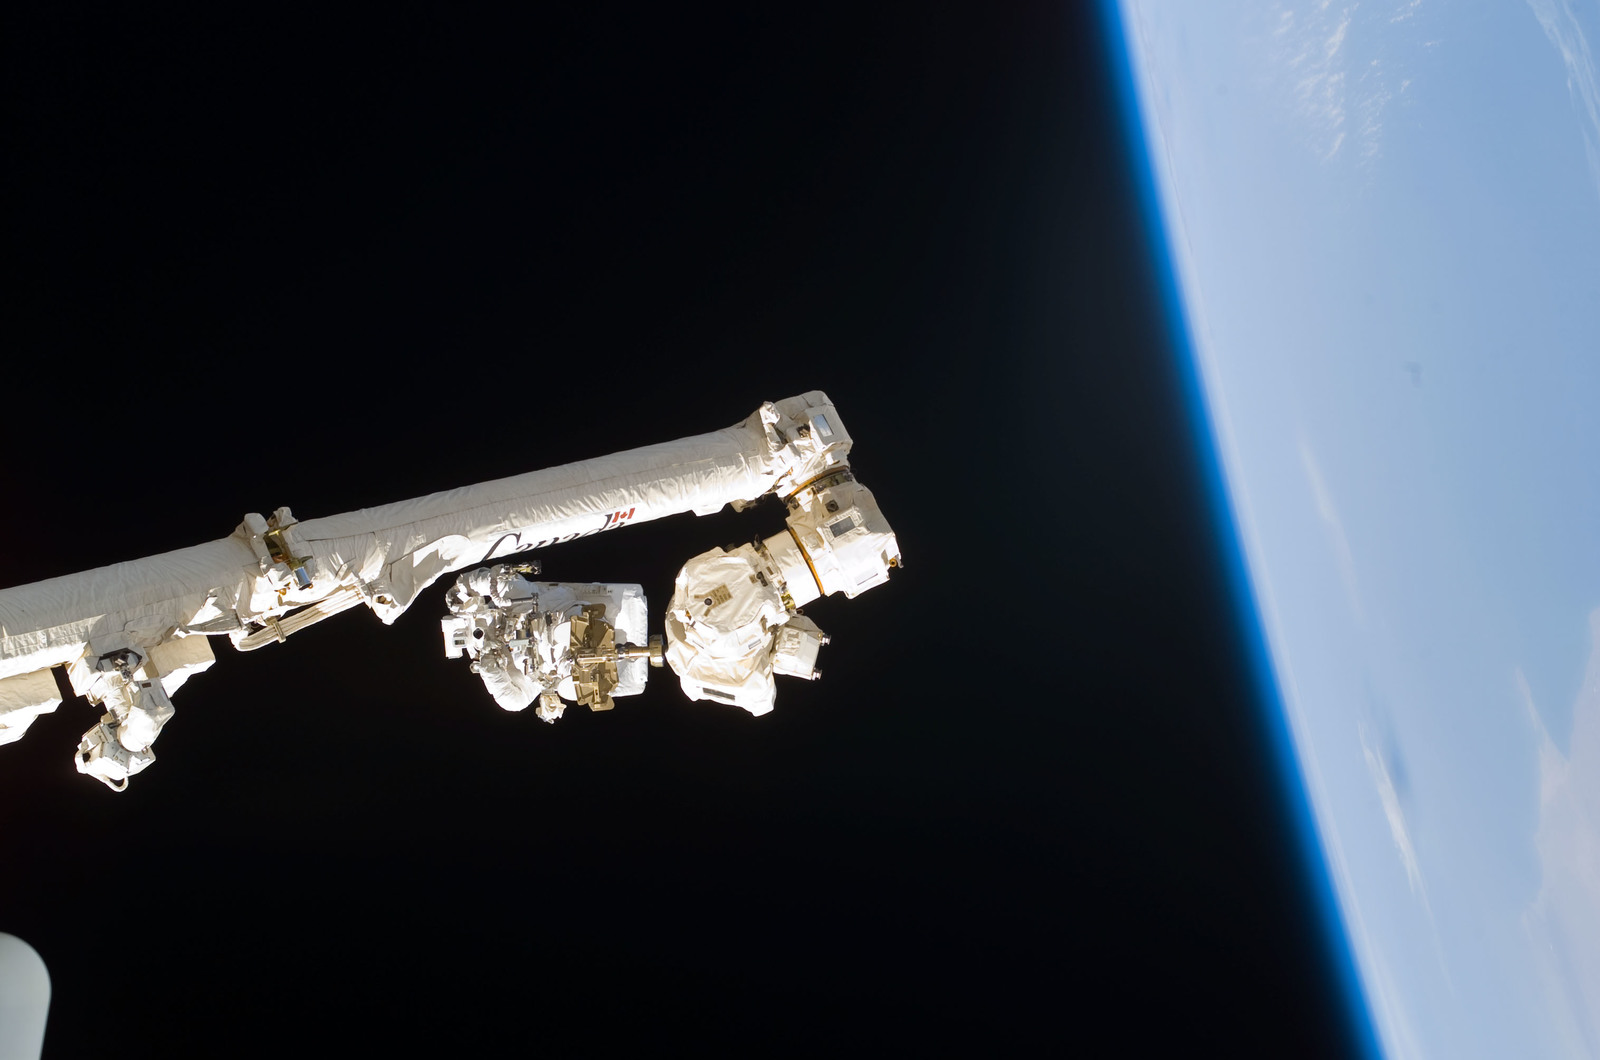 S114E6264 - STS-114 - Robinson on SSRMS Canadarm2 during EVA 3